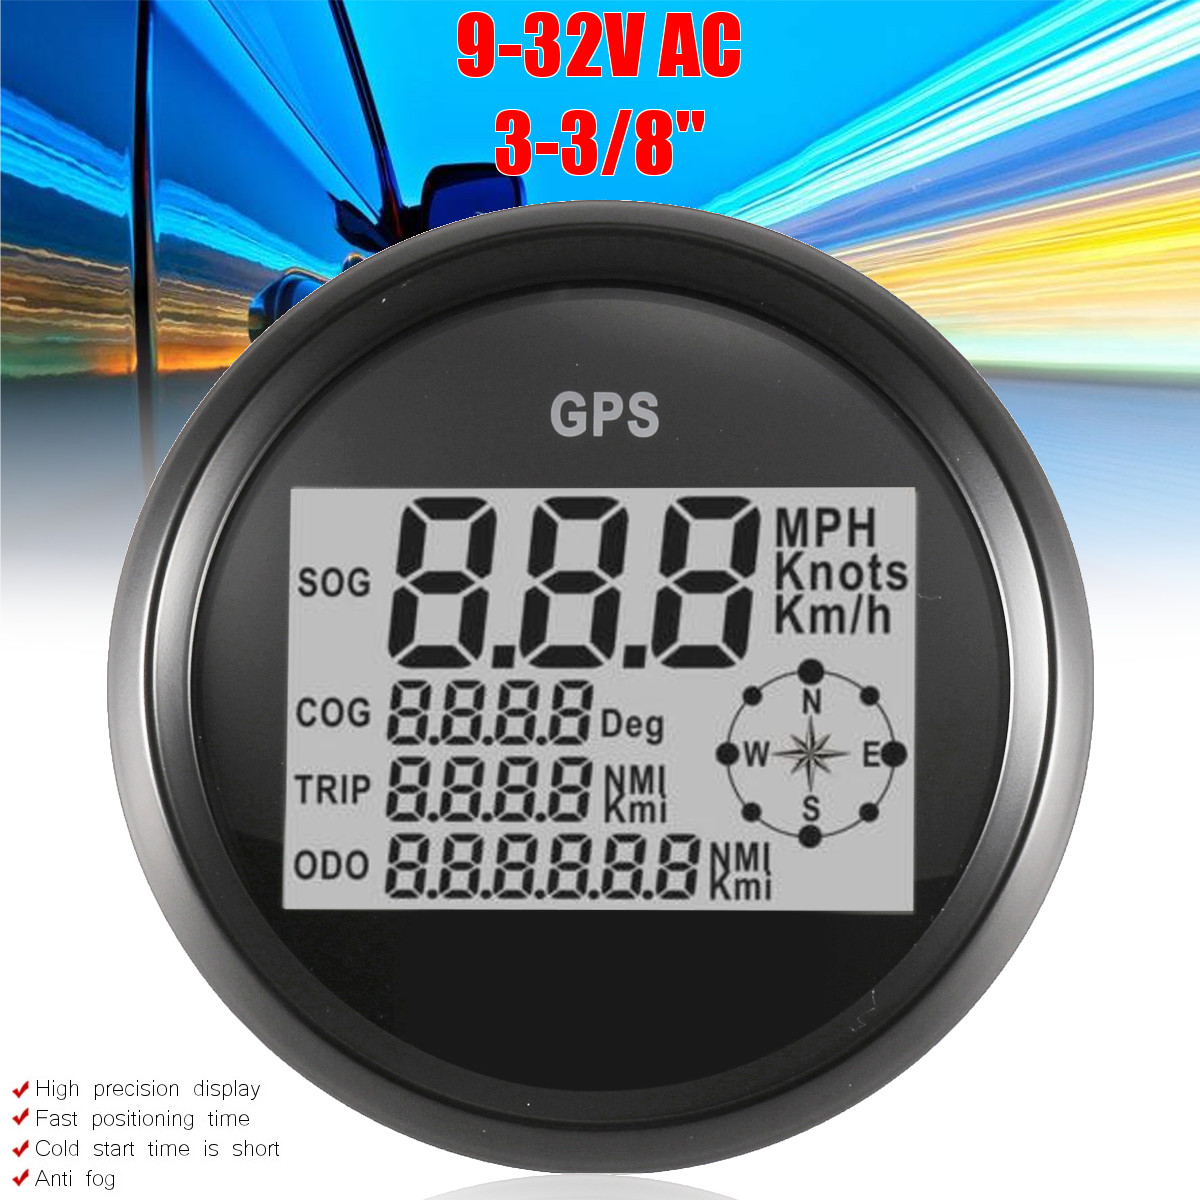 85mm 9-32VDC Digital GPS Speedometer Car Boat Motorcycle Truck fogproof Waterproof Universal Speedometer Gauge Electric Equipmen85mm 9-32VDC Digital GPS Speedometer Car Boat Motorcycle Truck fogproof Waterproof Universal Speedometer Gauge Electric Equipmen